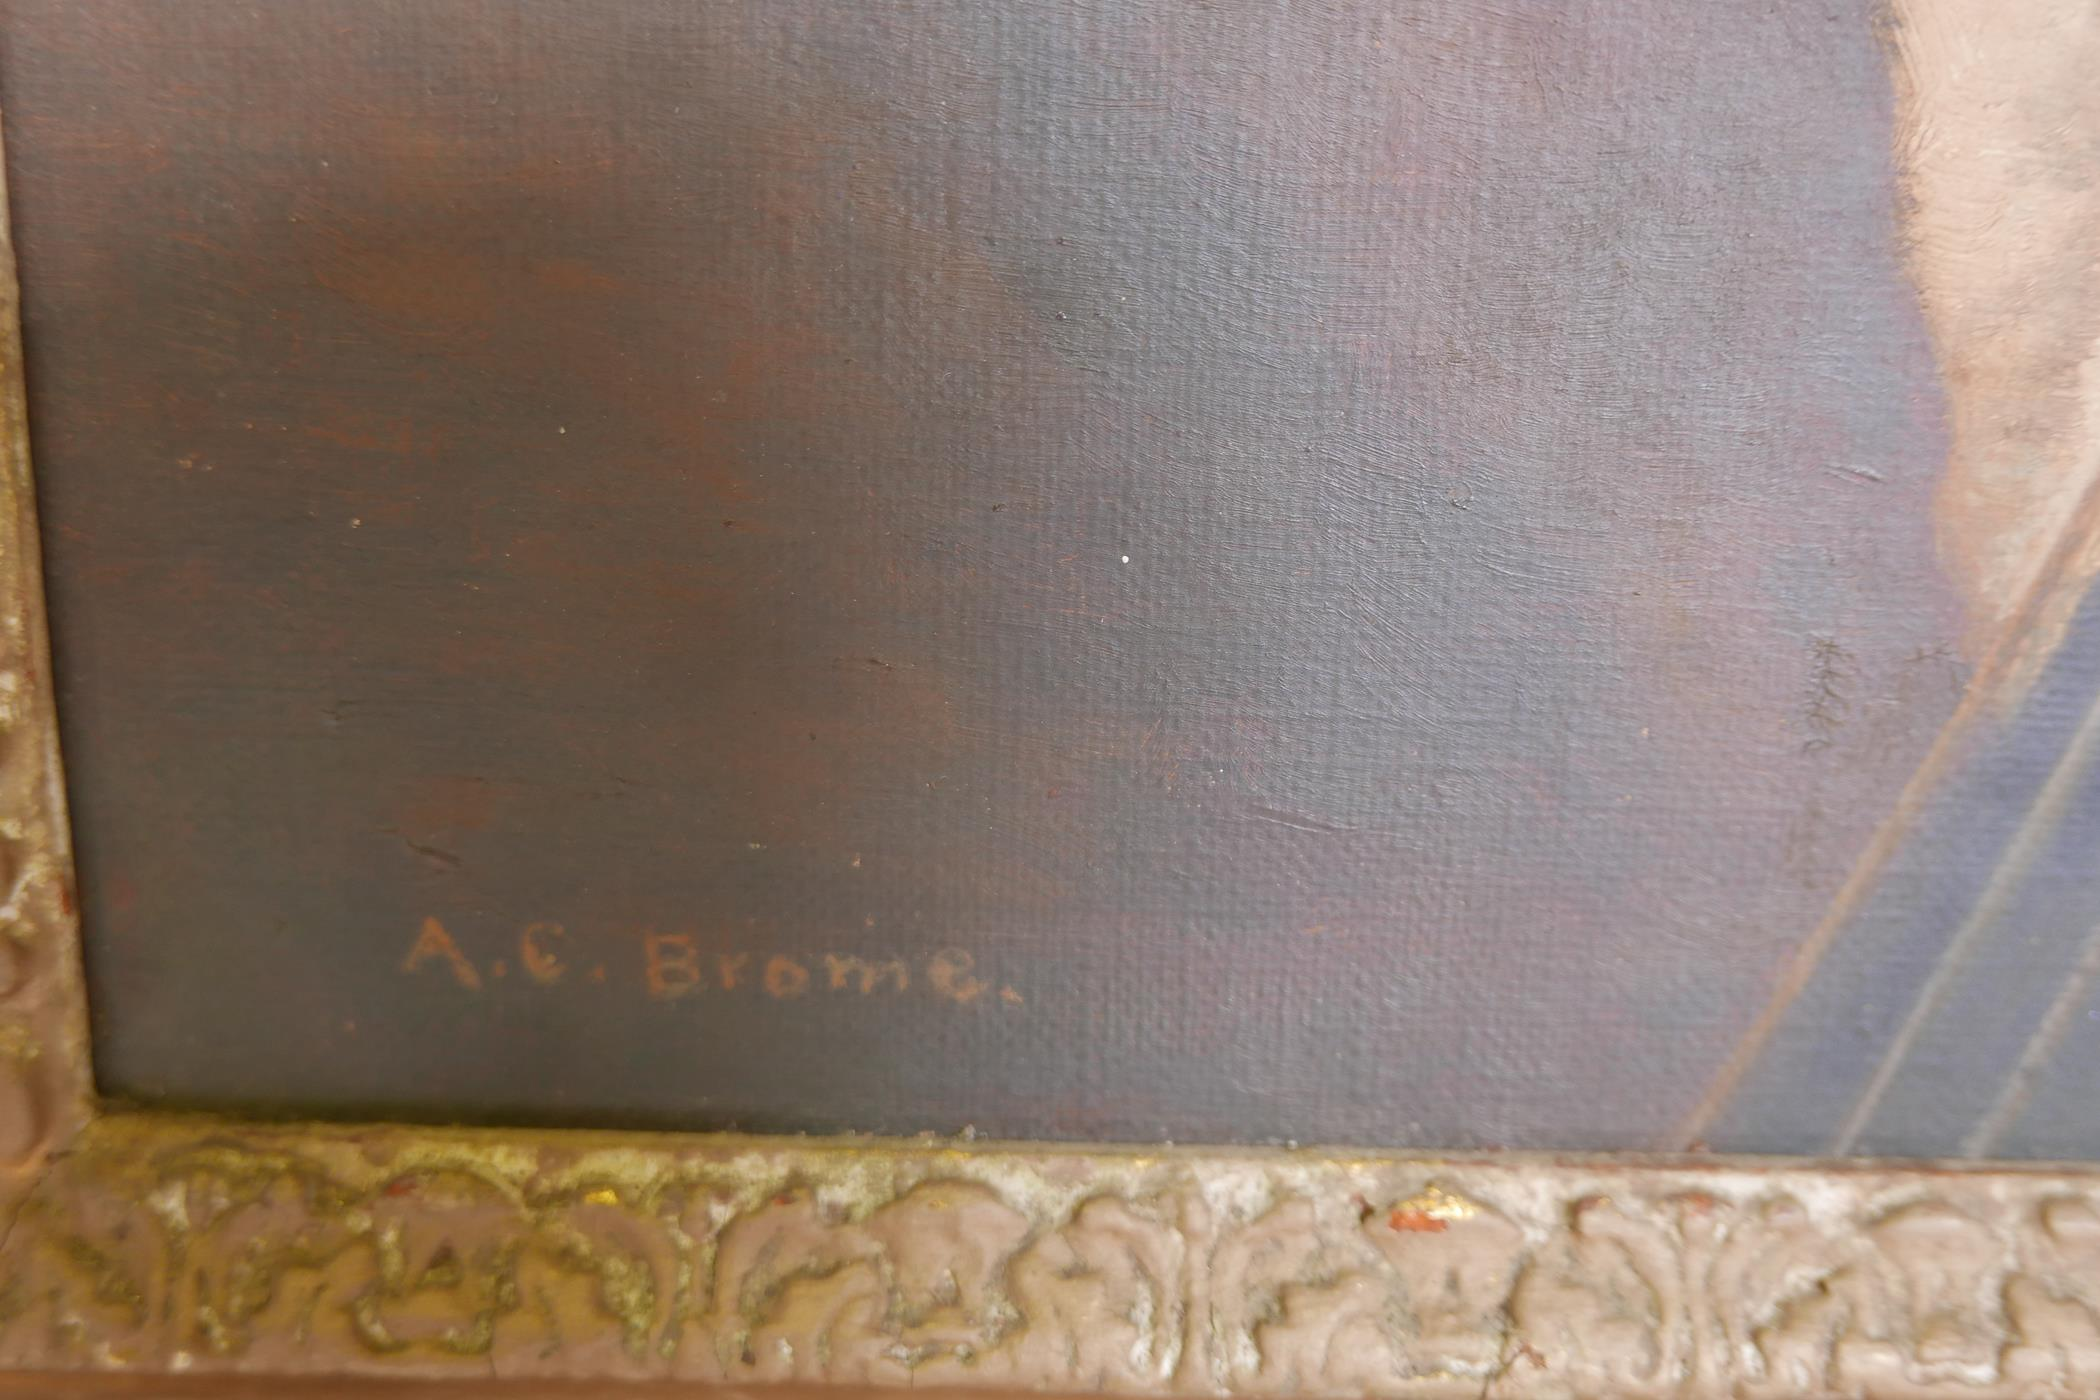 """A.C. Brome (Miss Adele Cecilia), The Cellist, signed, early C20th oil on canvas laid on board, 15"""" x - Image 3 of 5"""